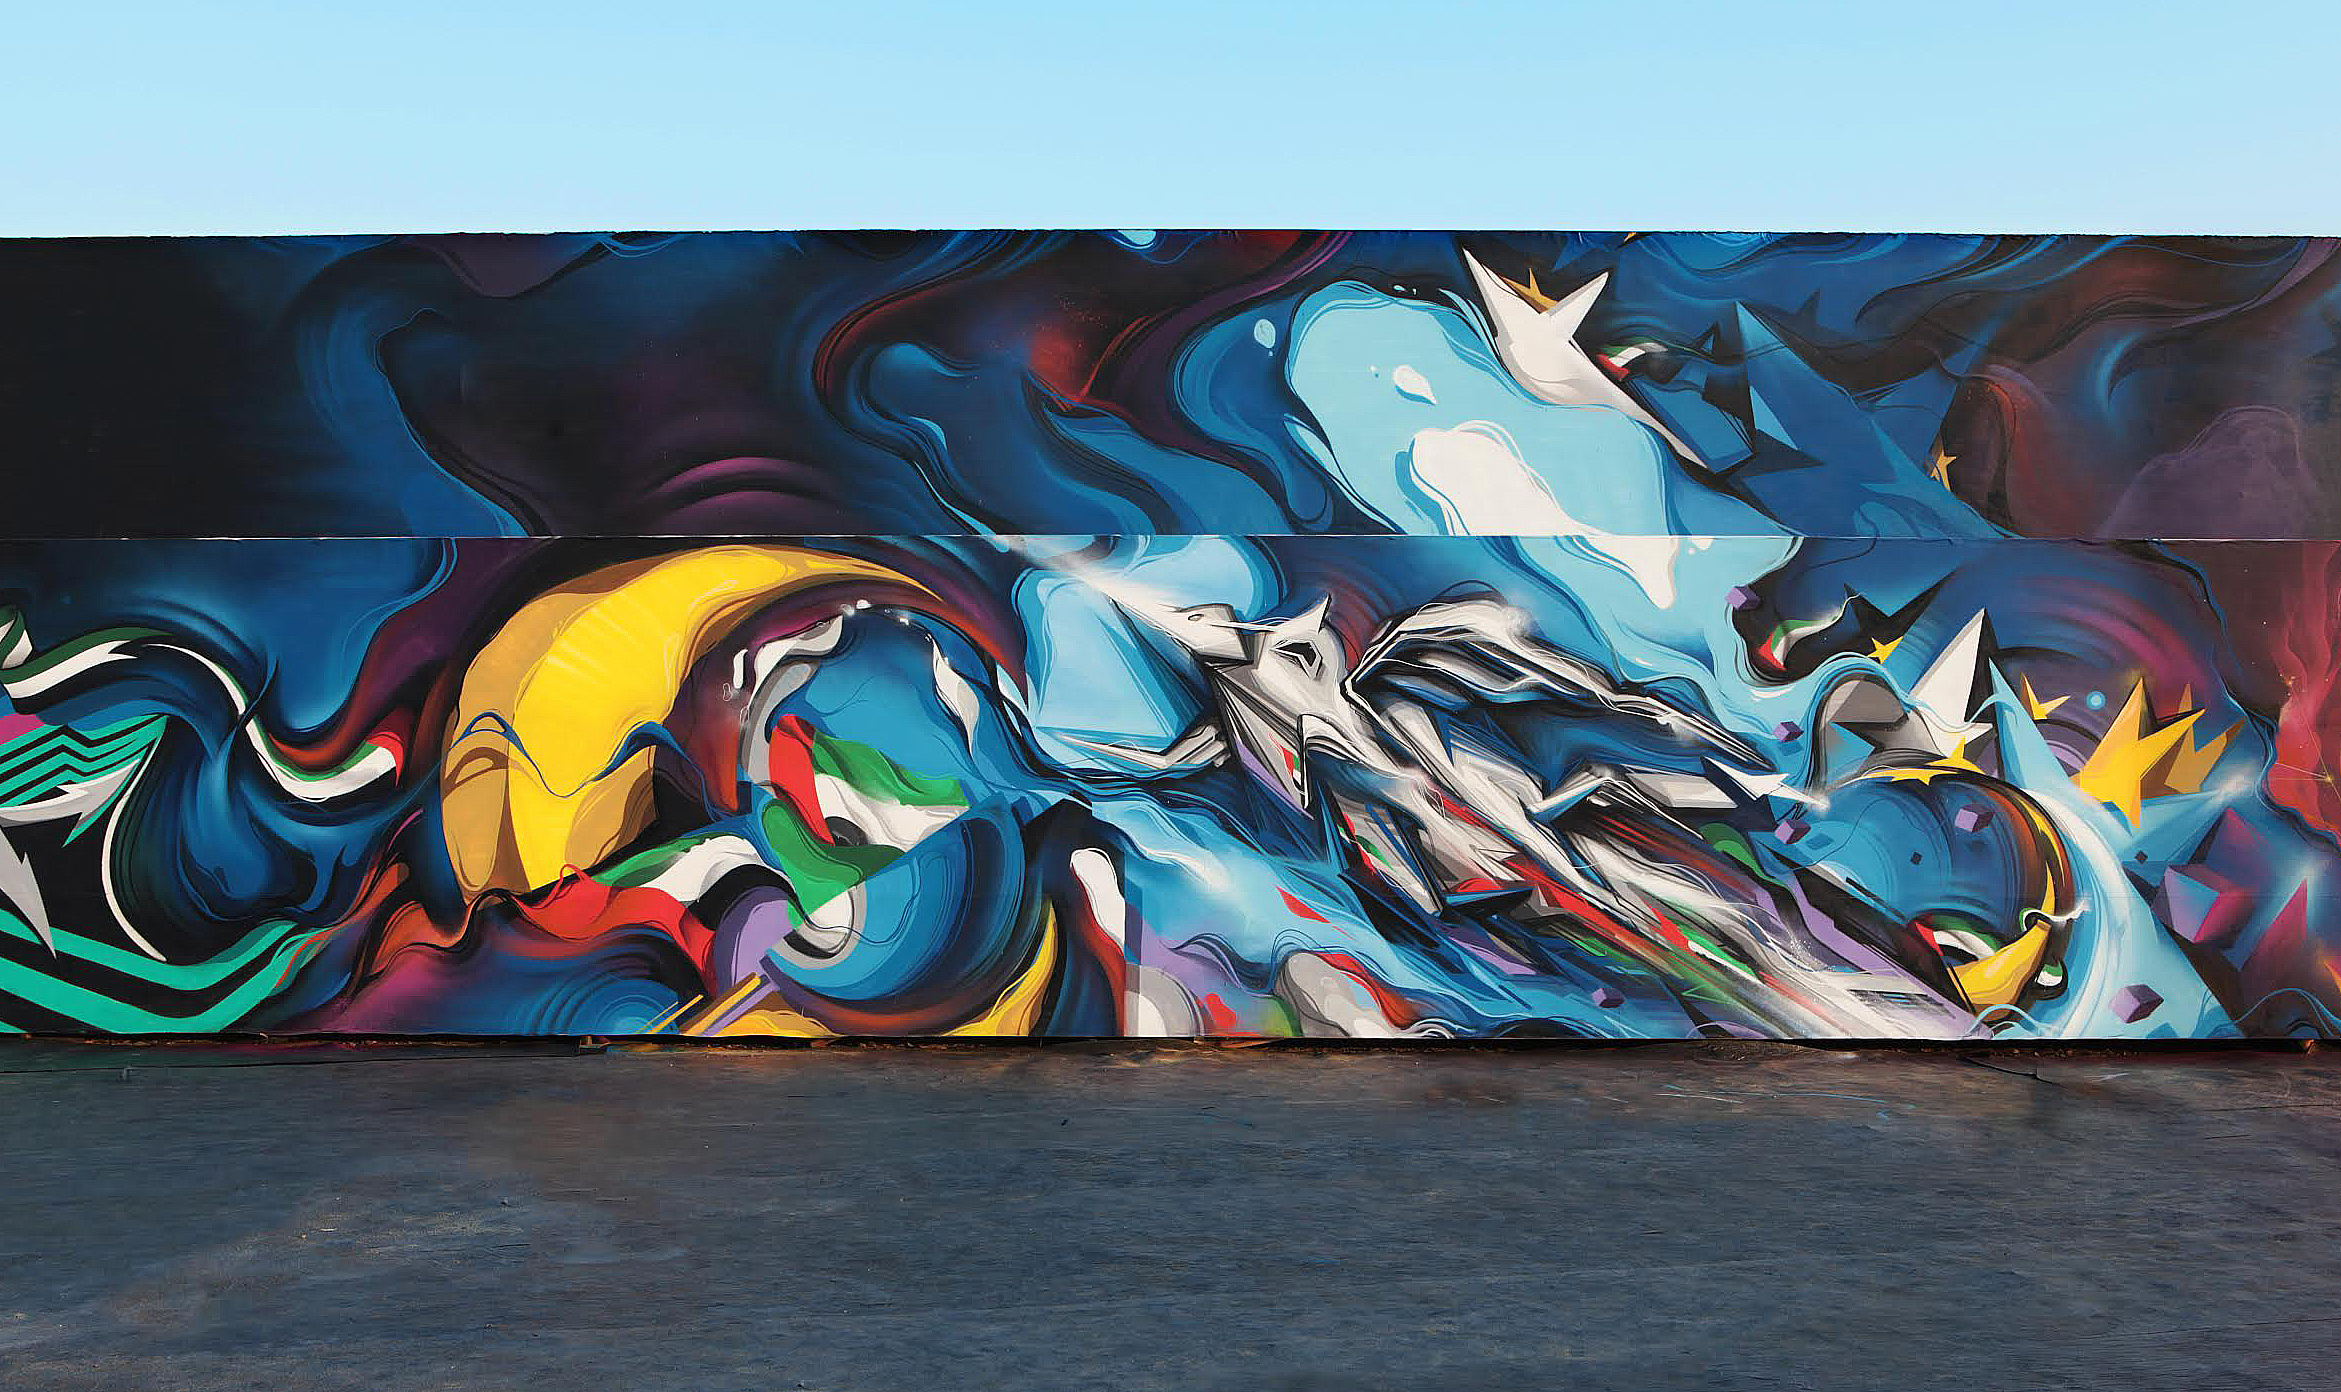 A work by Does - Dubai uae ironlak family 4